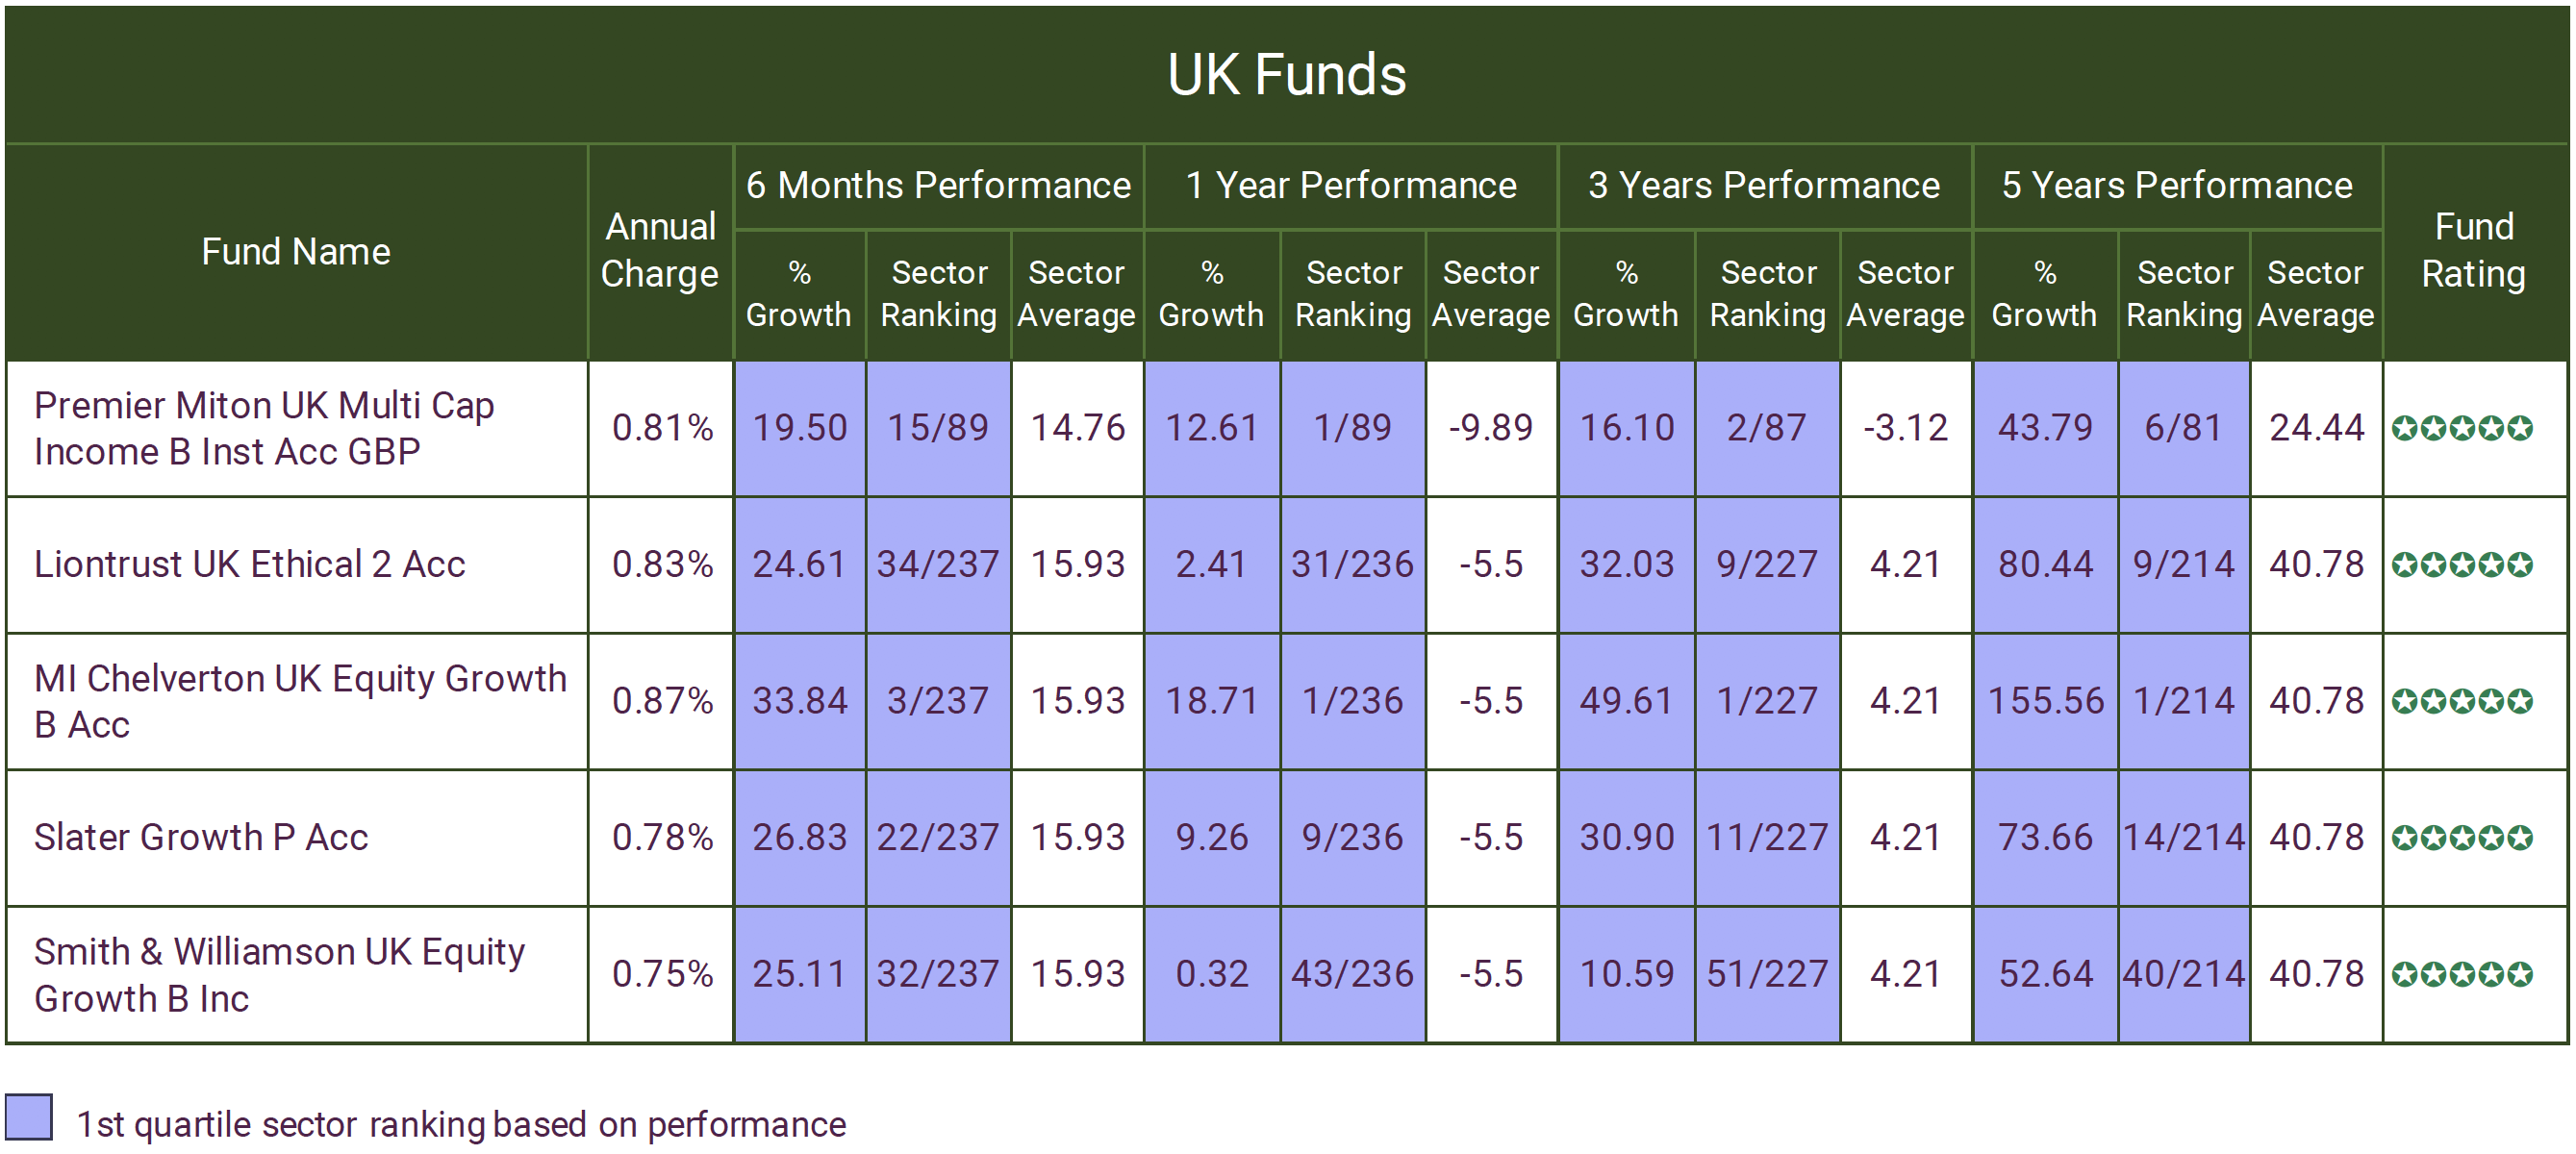 UK FUNDS MARCH 2021